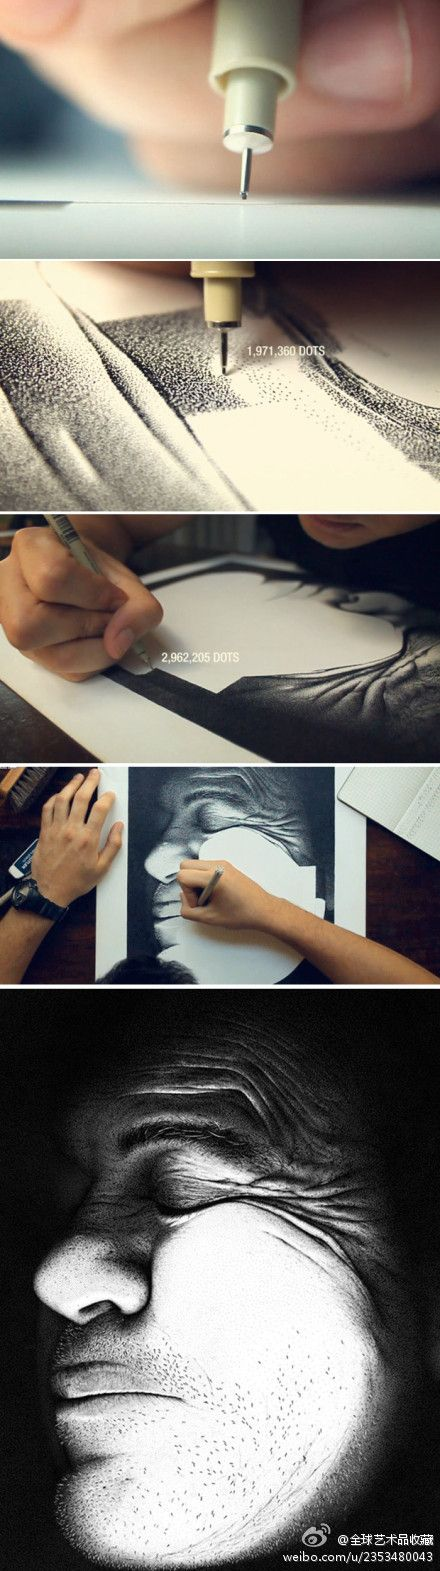 dot-painting [Hero] by Miguel Endara - 210 hours, 3.2million dots